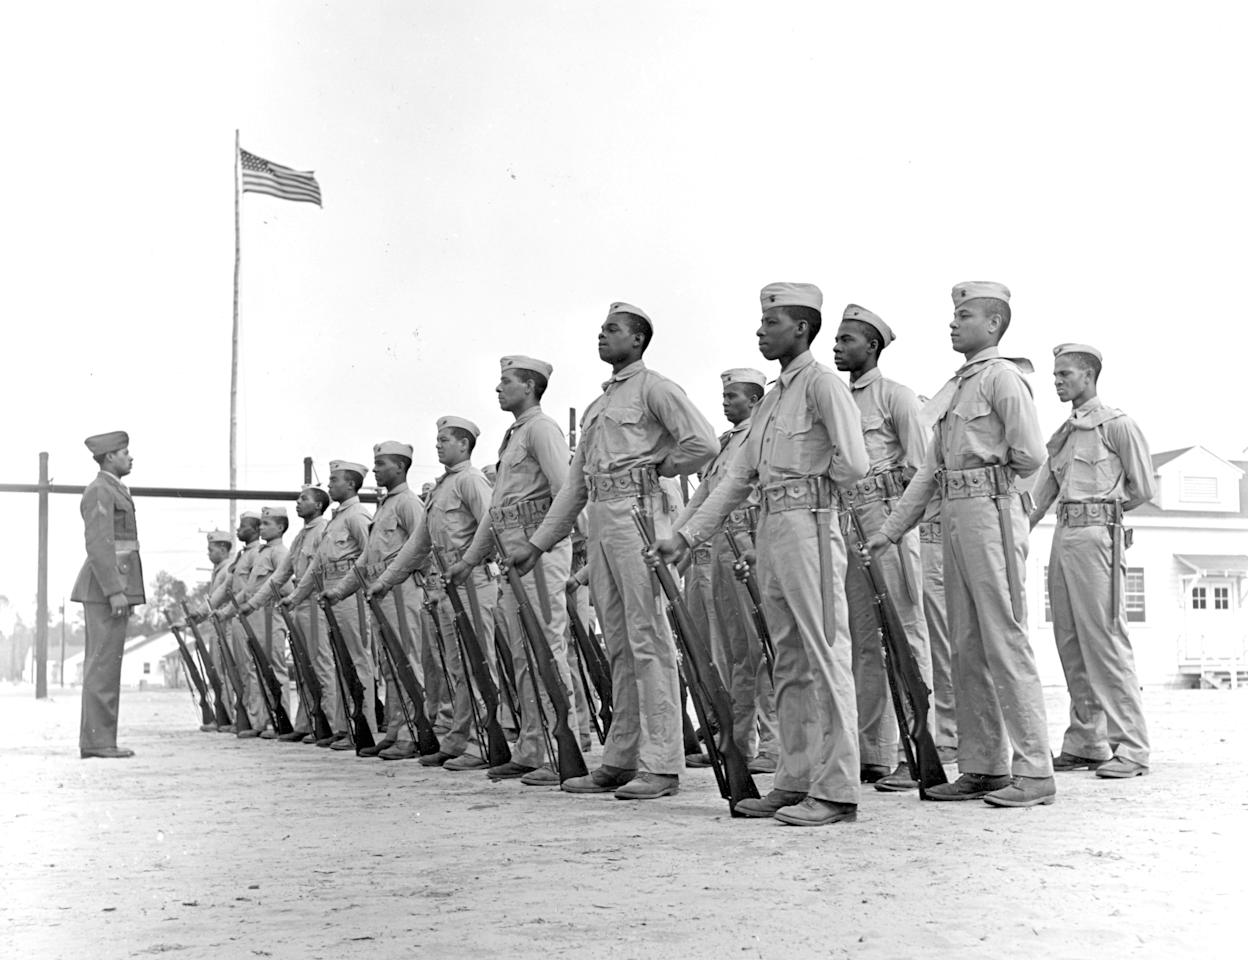 CORRECTS CREDIT TO UNITED STATES MARINE CORPS - In this April 1943 image provided by the Marine Corps, a platoon of Monfort Marine recruits stand at attention in New River, North Carolina. Nearly 70 years after the Marine Corps, the last military branch to racially integrate, accepted segregated black units, the Marine Corps' top general is pushing to honor the history of the Monfort Point Marines. (AP Photo/United States Marine Corps)